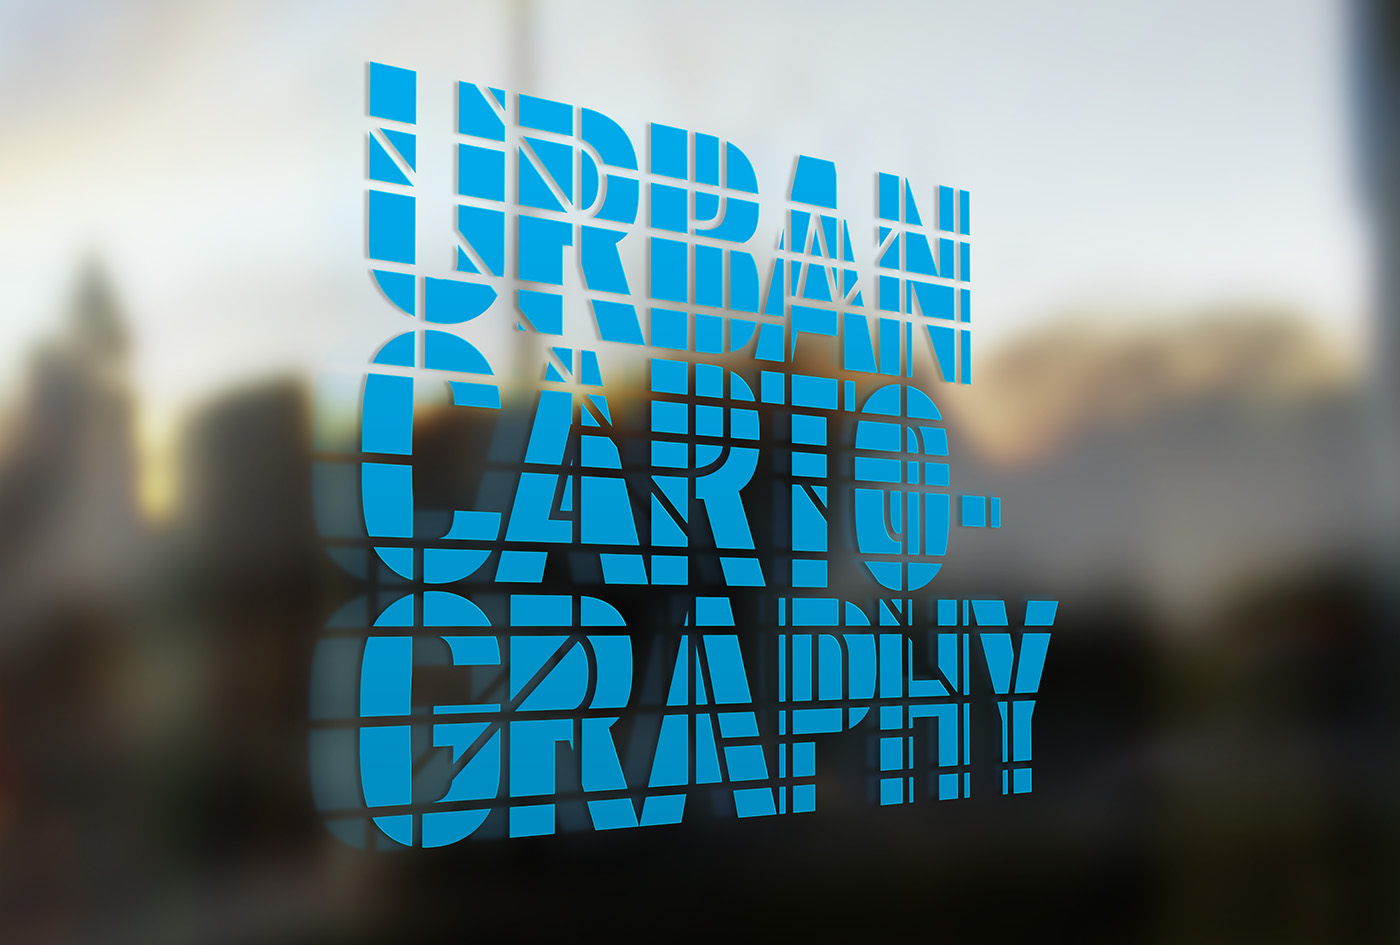 urban-cartography-window-lg-hazen-creative